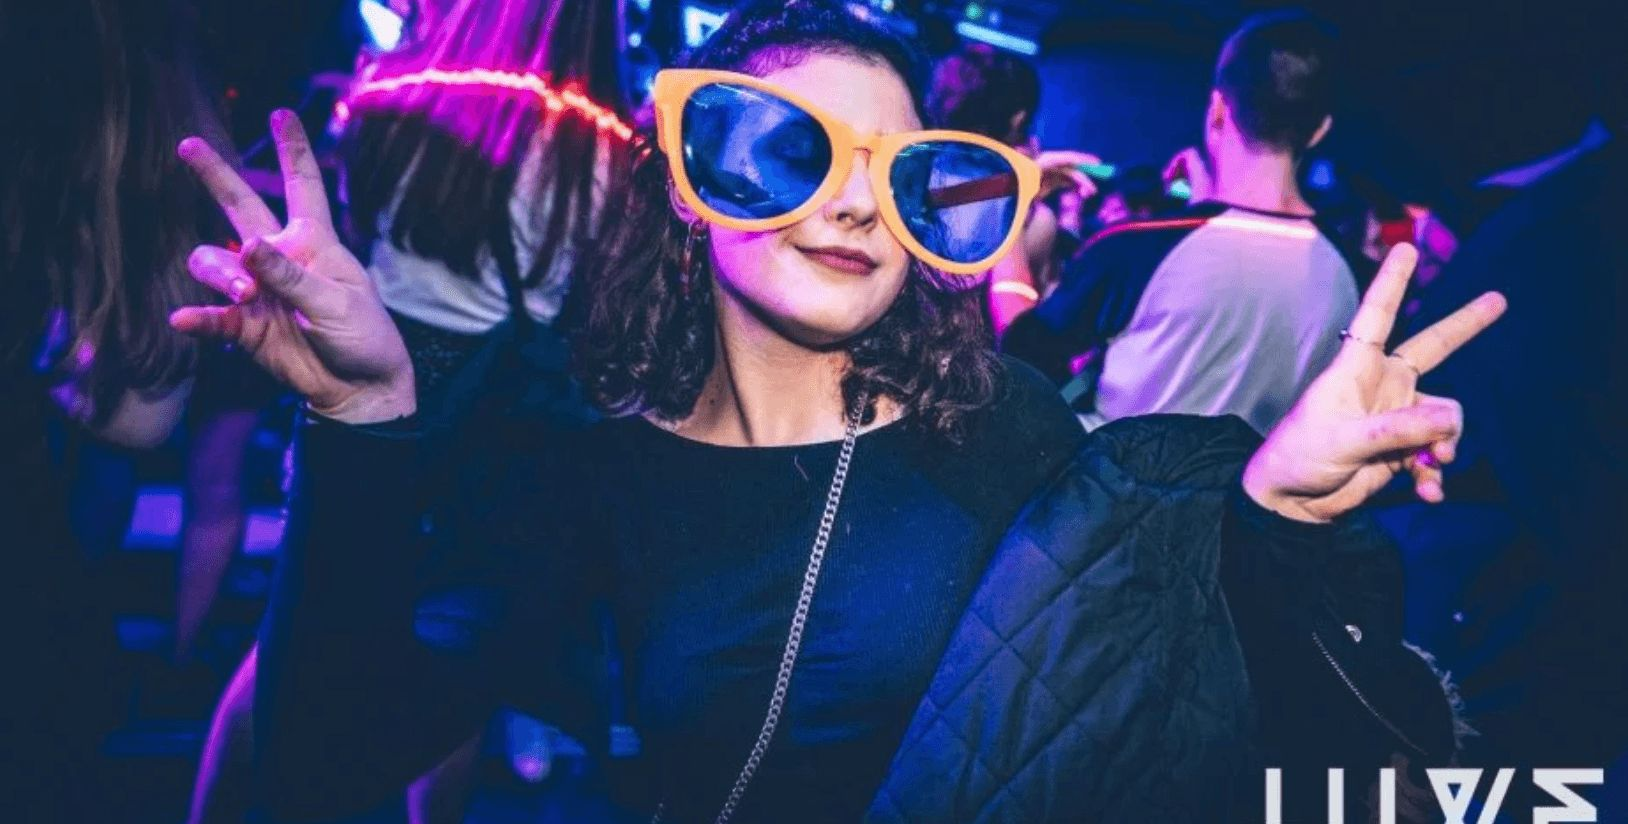 Image may contain: April Fool's Day 2019, fake news, April Fool's, prank, Purple, Crowd, Face, Night Club, Party, Glasses, Club, Night Life, Person, Human, Accessories, Sunglasses, Accessory